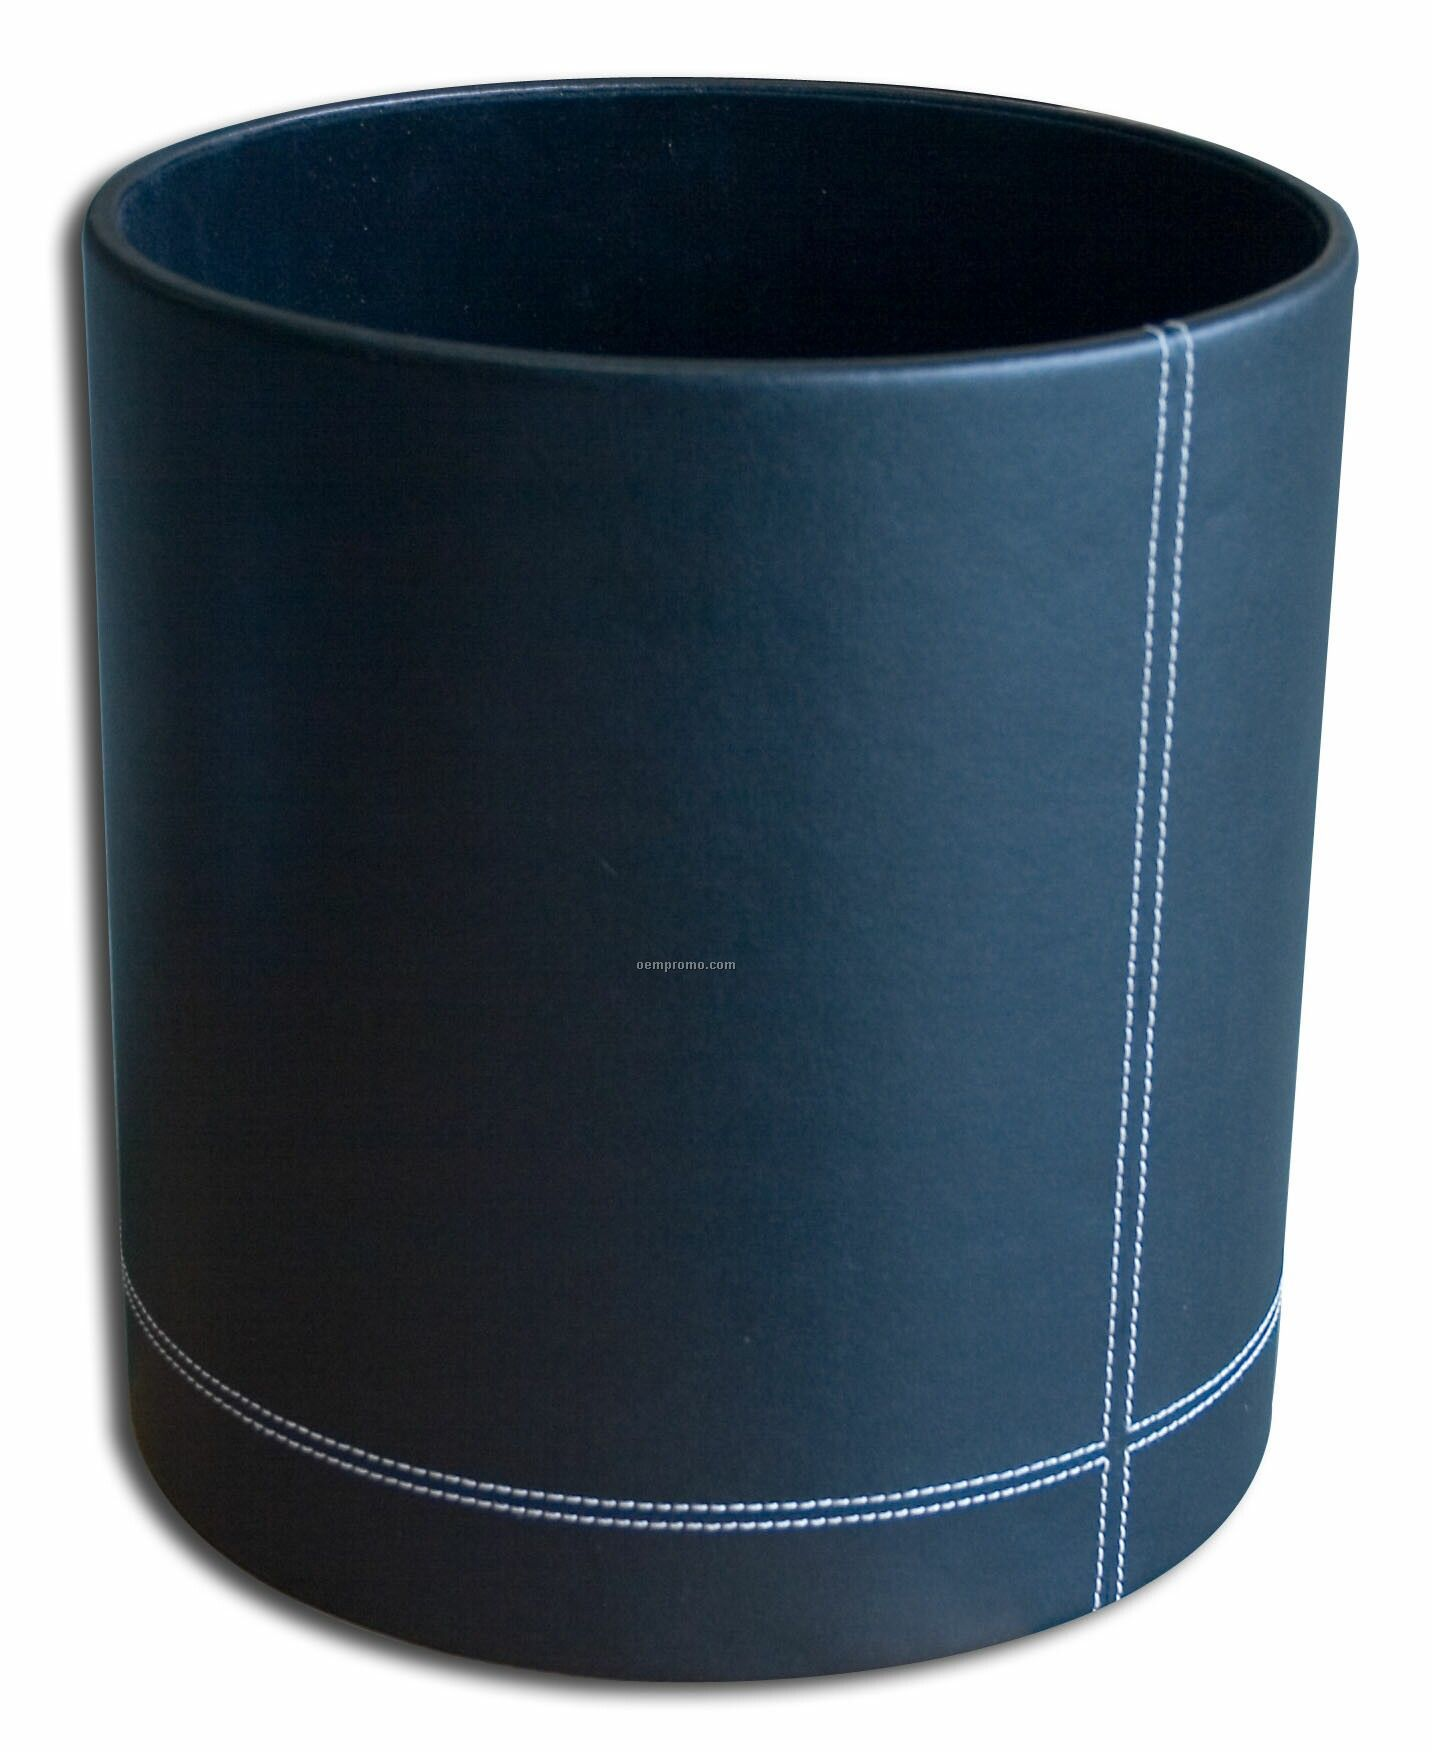 Black Eco-friendly Leather Round Waste Basket